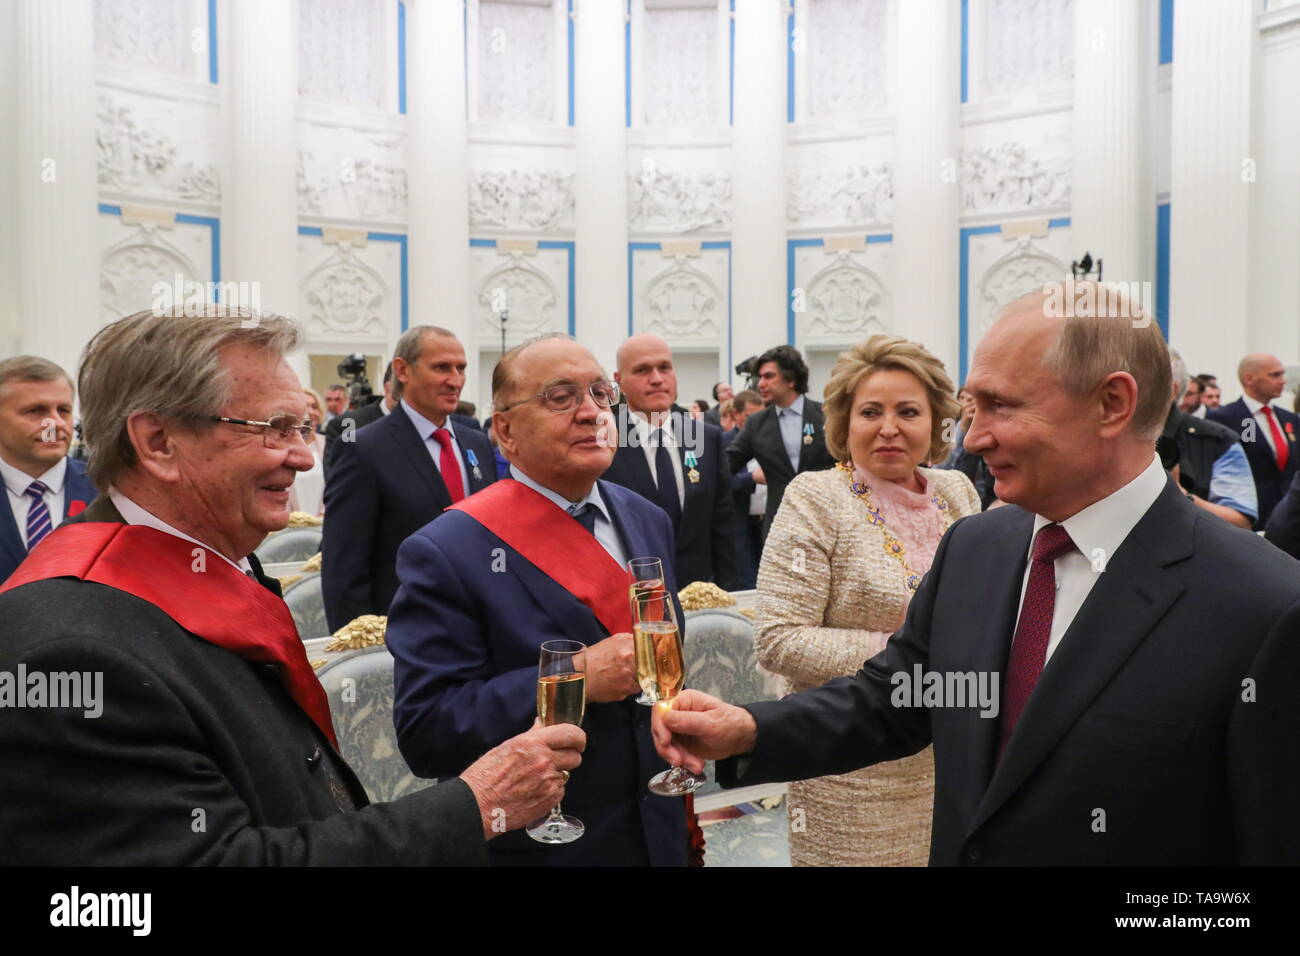 Moscow, Russia. 23rd May, 2019. MOSCOW, RUSSIA - MAY 23, 2019: Vladimir Fedoseyev, Artistic Director and Chief Conductor of the Tchaikovsky Symphony Orchestra, Lomonosov Moscow State University Rector Viktor Sadovnichy, Federation Council Chairperson Valentina Matvienko, and Russia's President Vladimir Putin (L-R front) after a ceremony to present state decorations at the Moscow Kremlin. Mikhail Klimentyev/Russian Presidential Press and Information Office/TASS Credit: ITAR-TASS News Agency/Alamy Live News - Stock Image